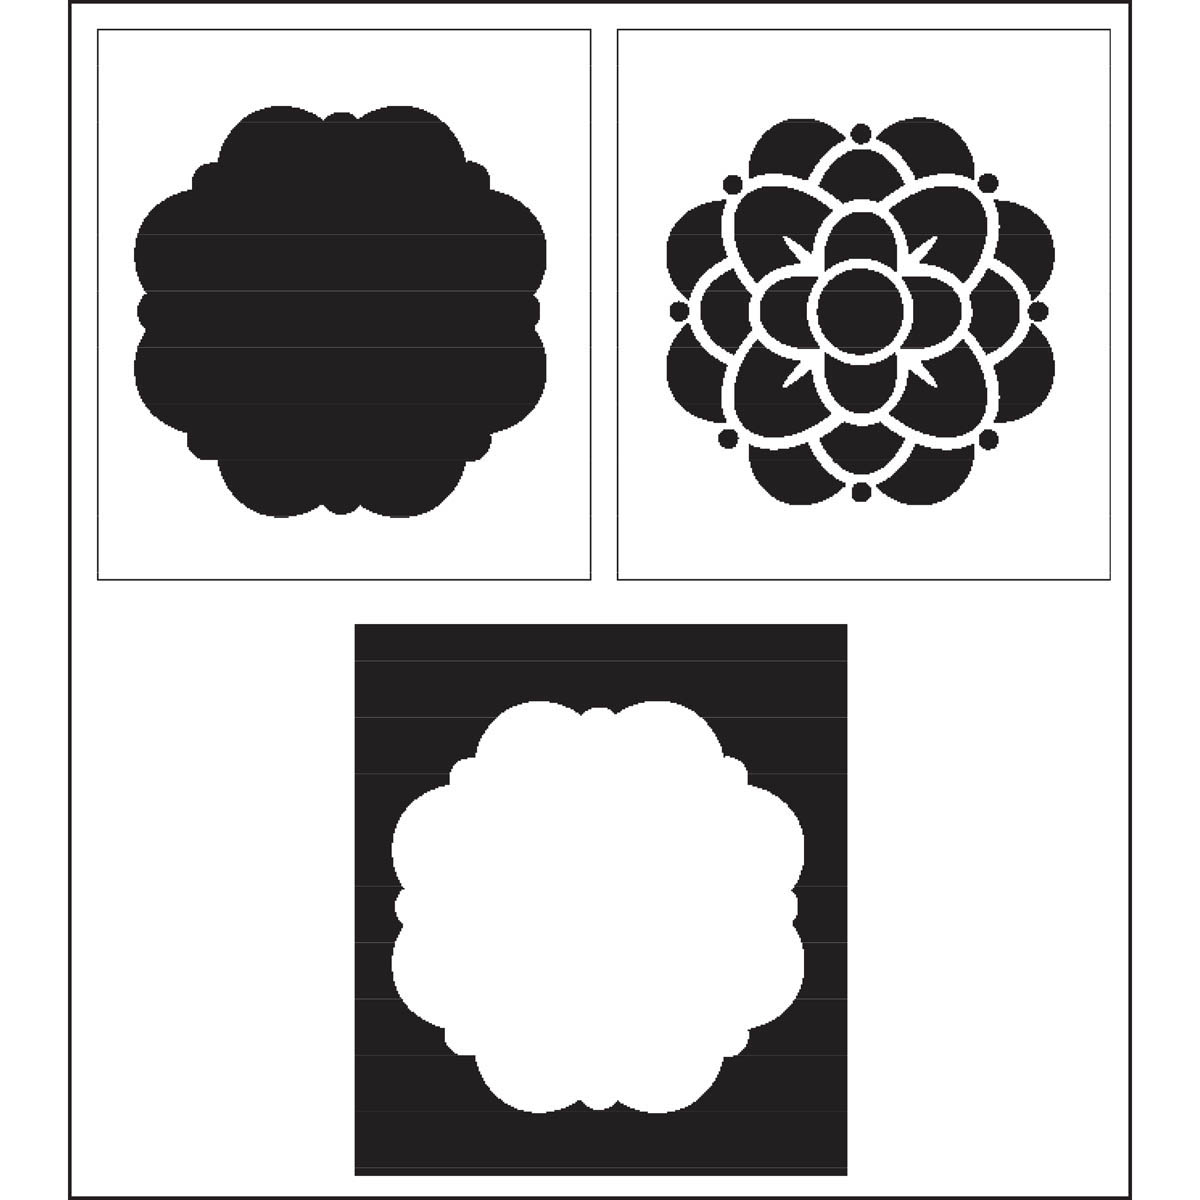 FolkArt ® Home Decor™ Layering Stencils - Flower